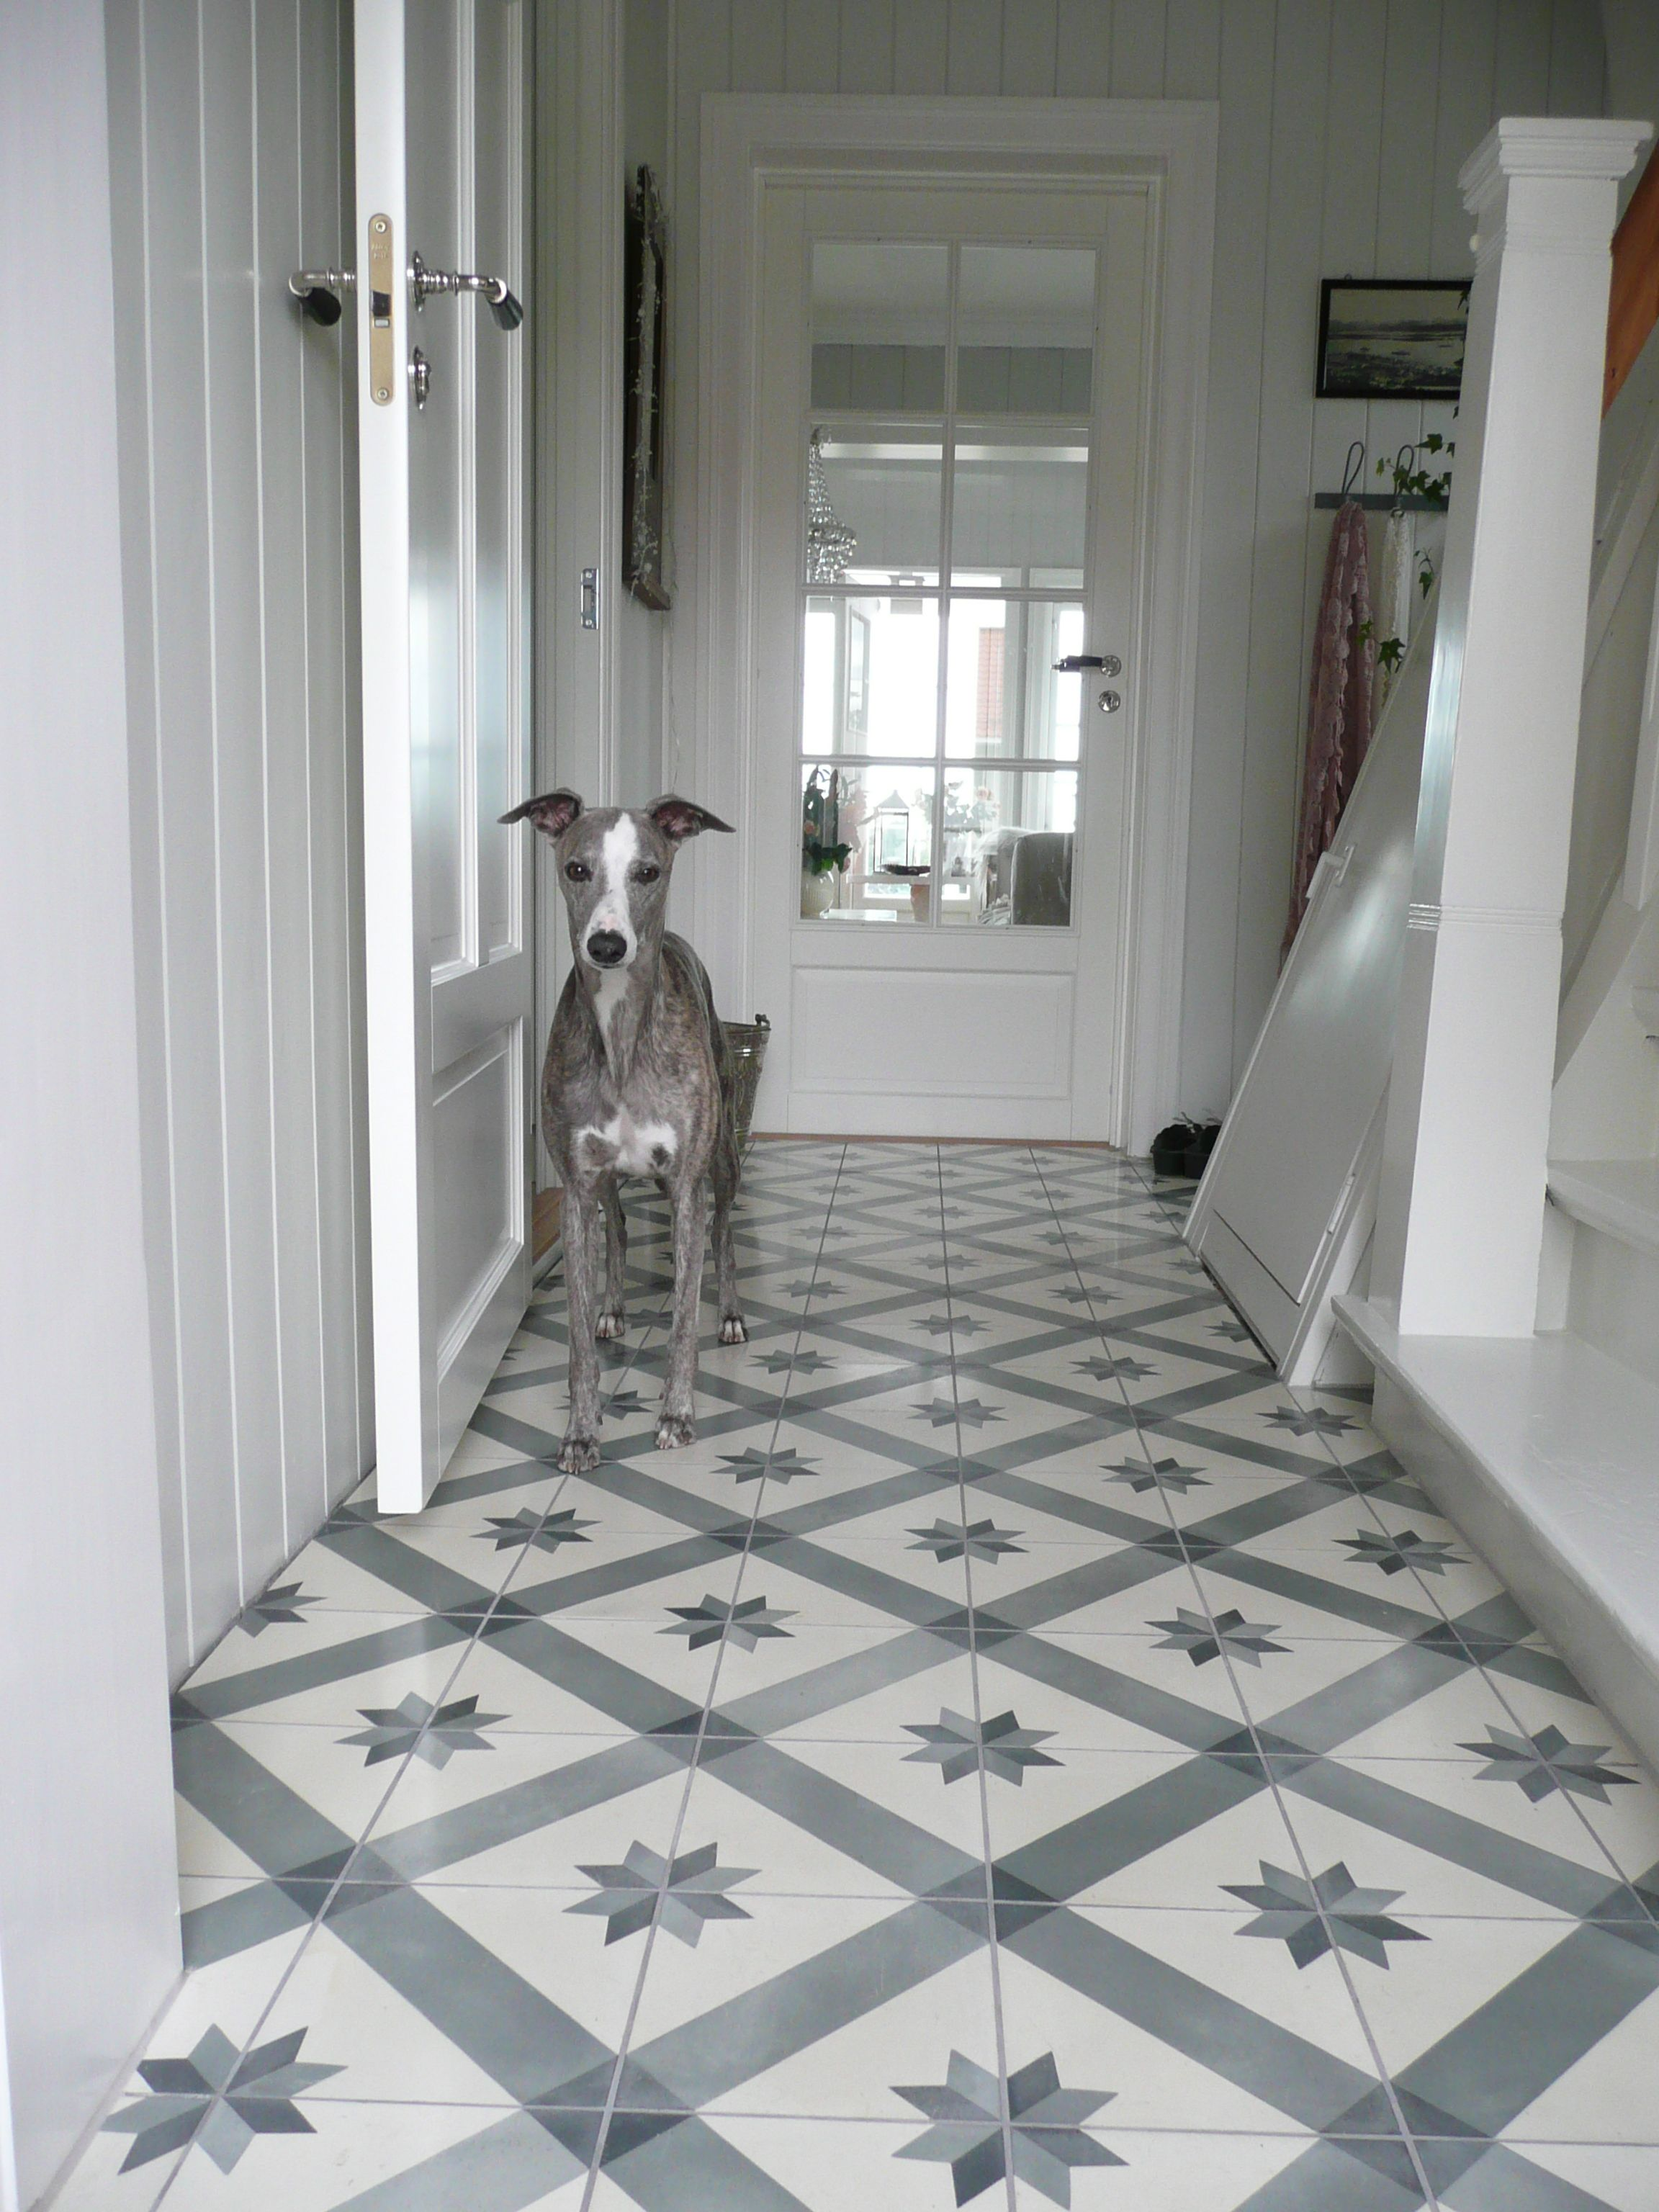 For my kitchen liten norsk hund bucket list of wishes beautiful tiled floor in entry and a pretty dog dailygadgetfo Images